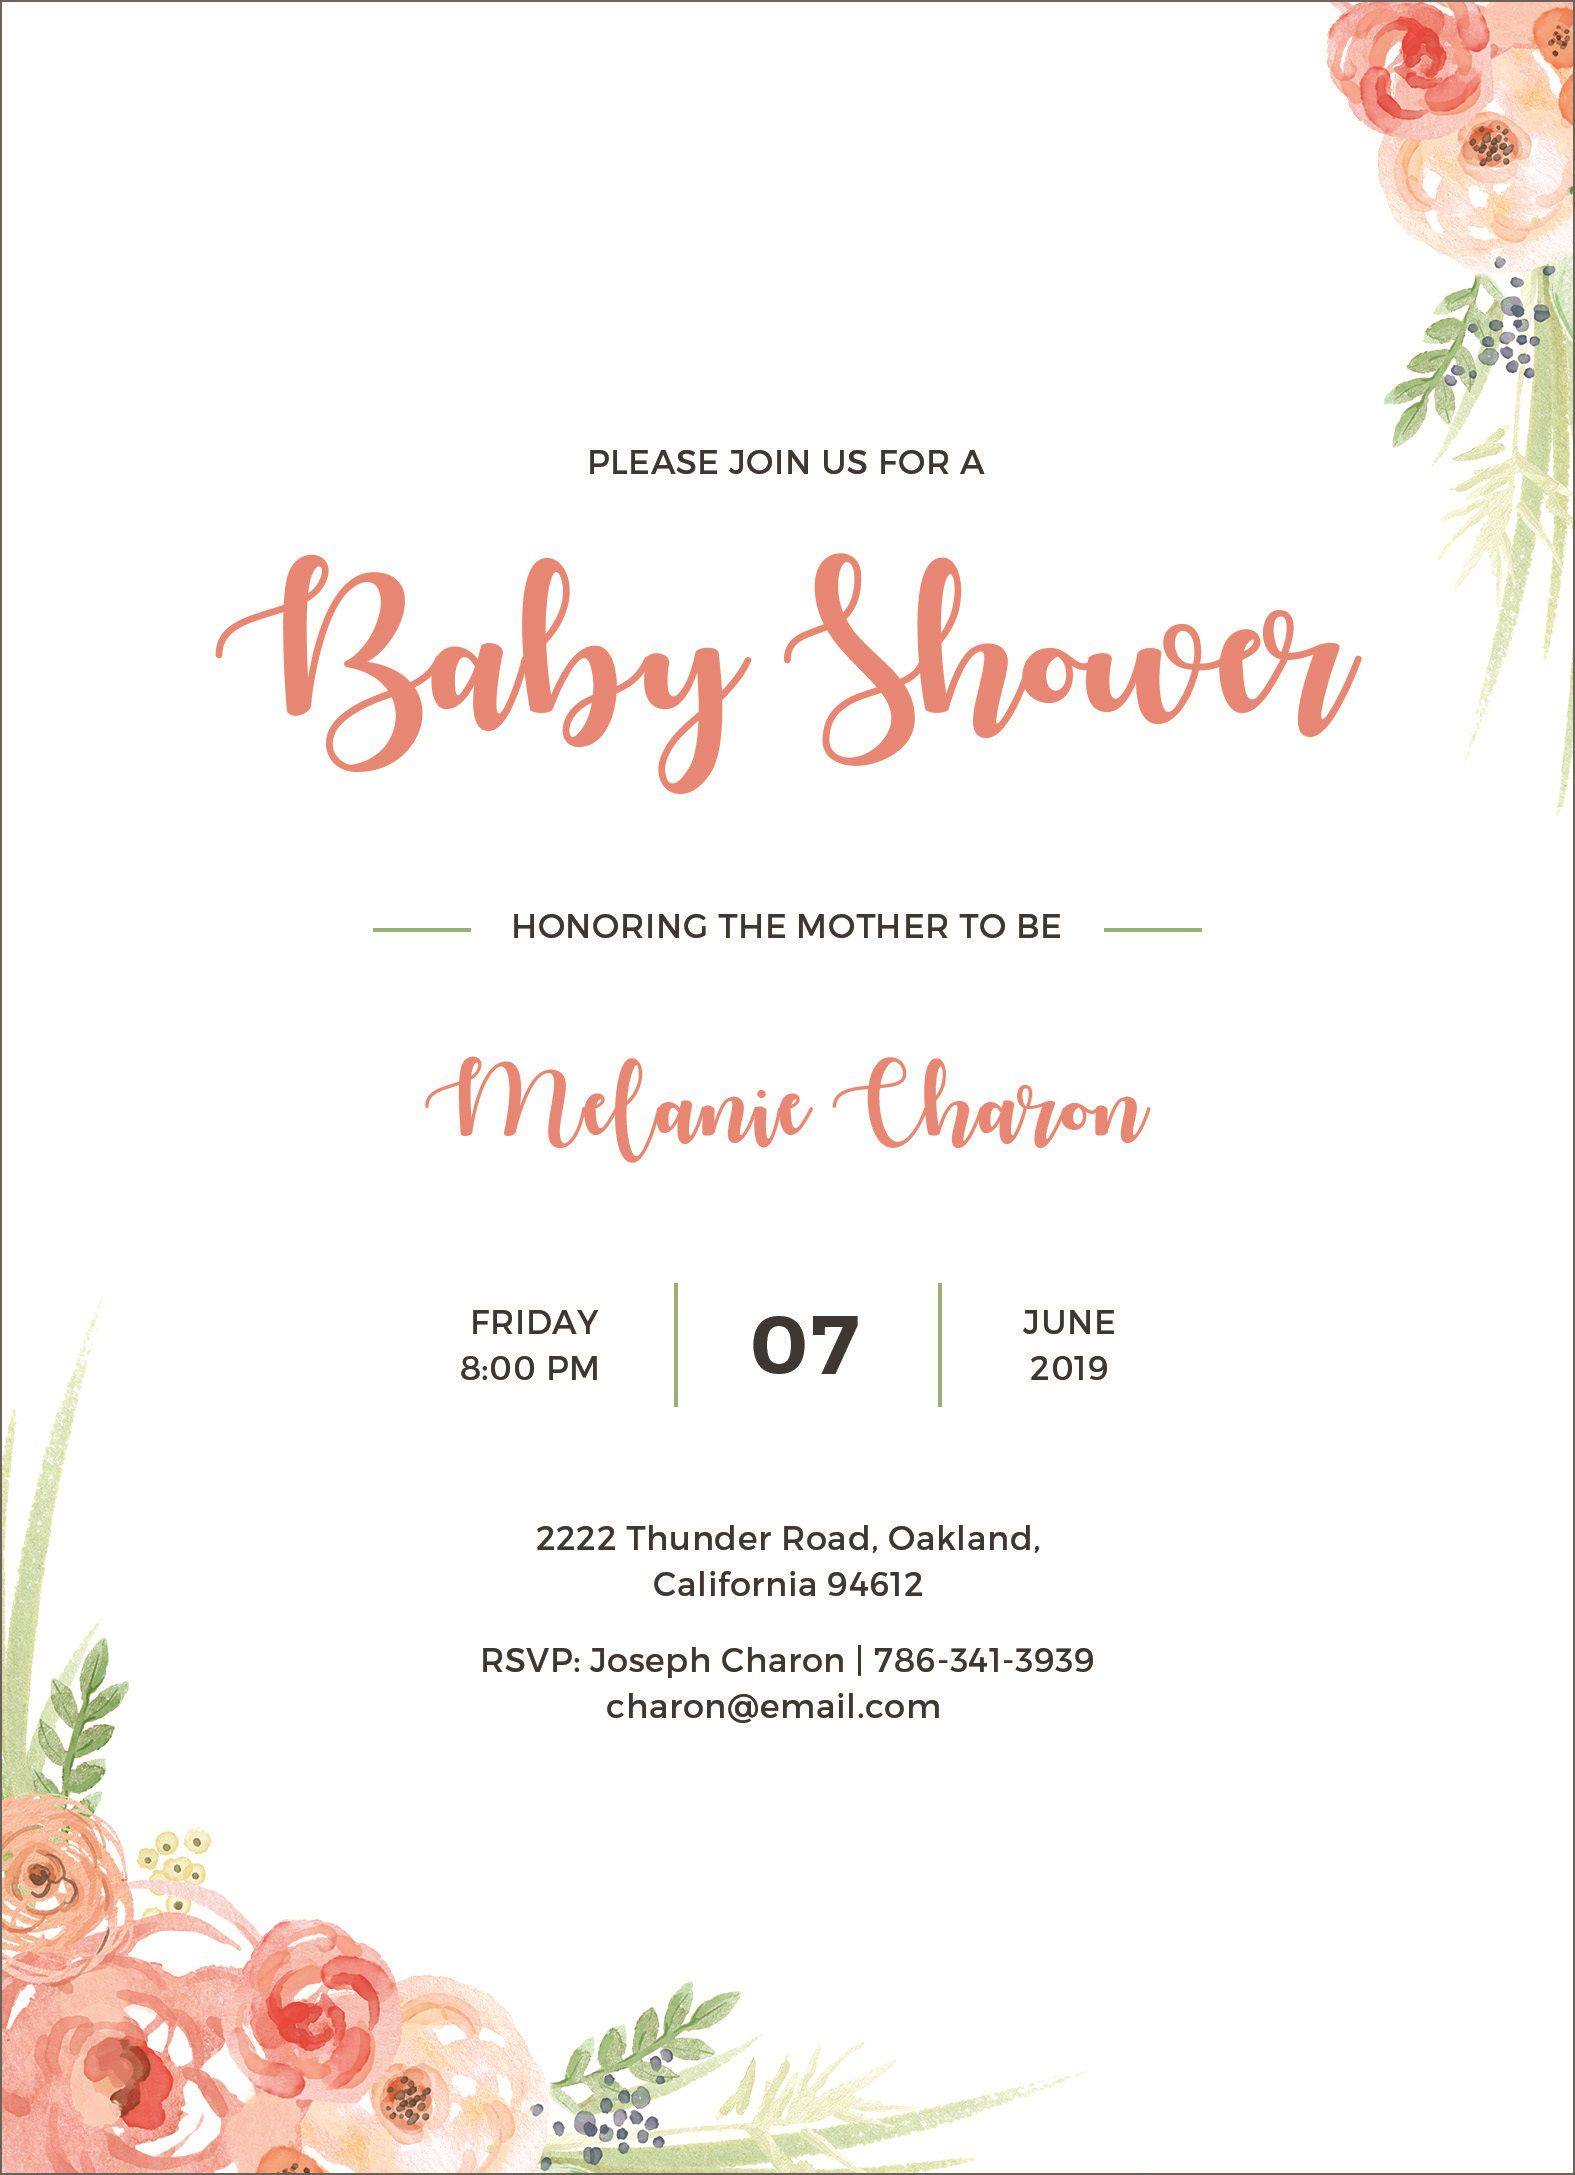 004 Stupendou Baby Shower Announcement Template Concept  Templates Invitation India Indian Free With PhotoFull